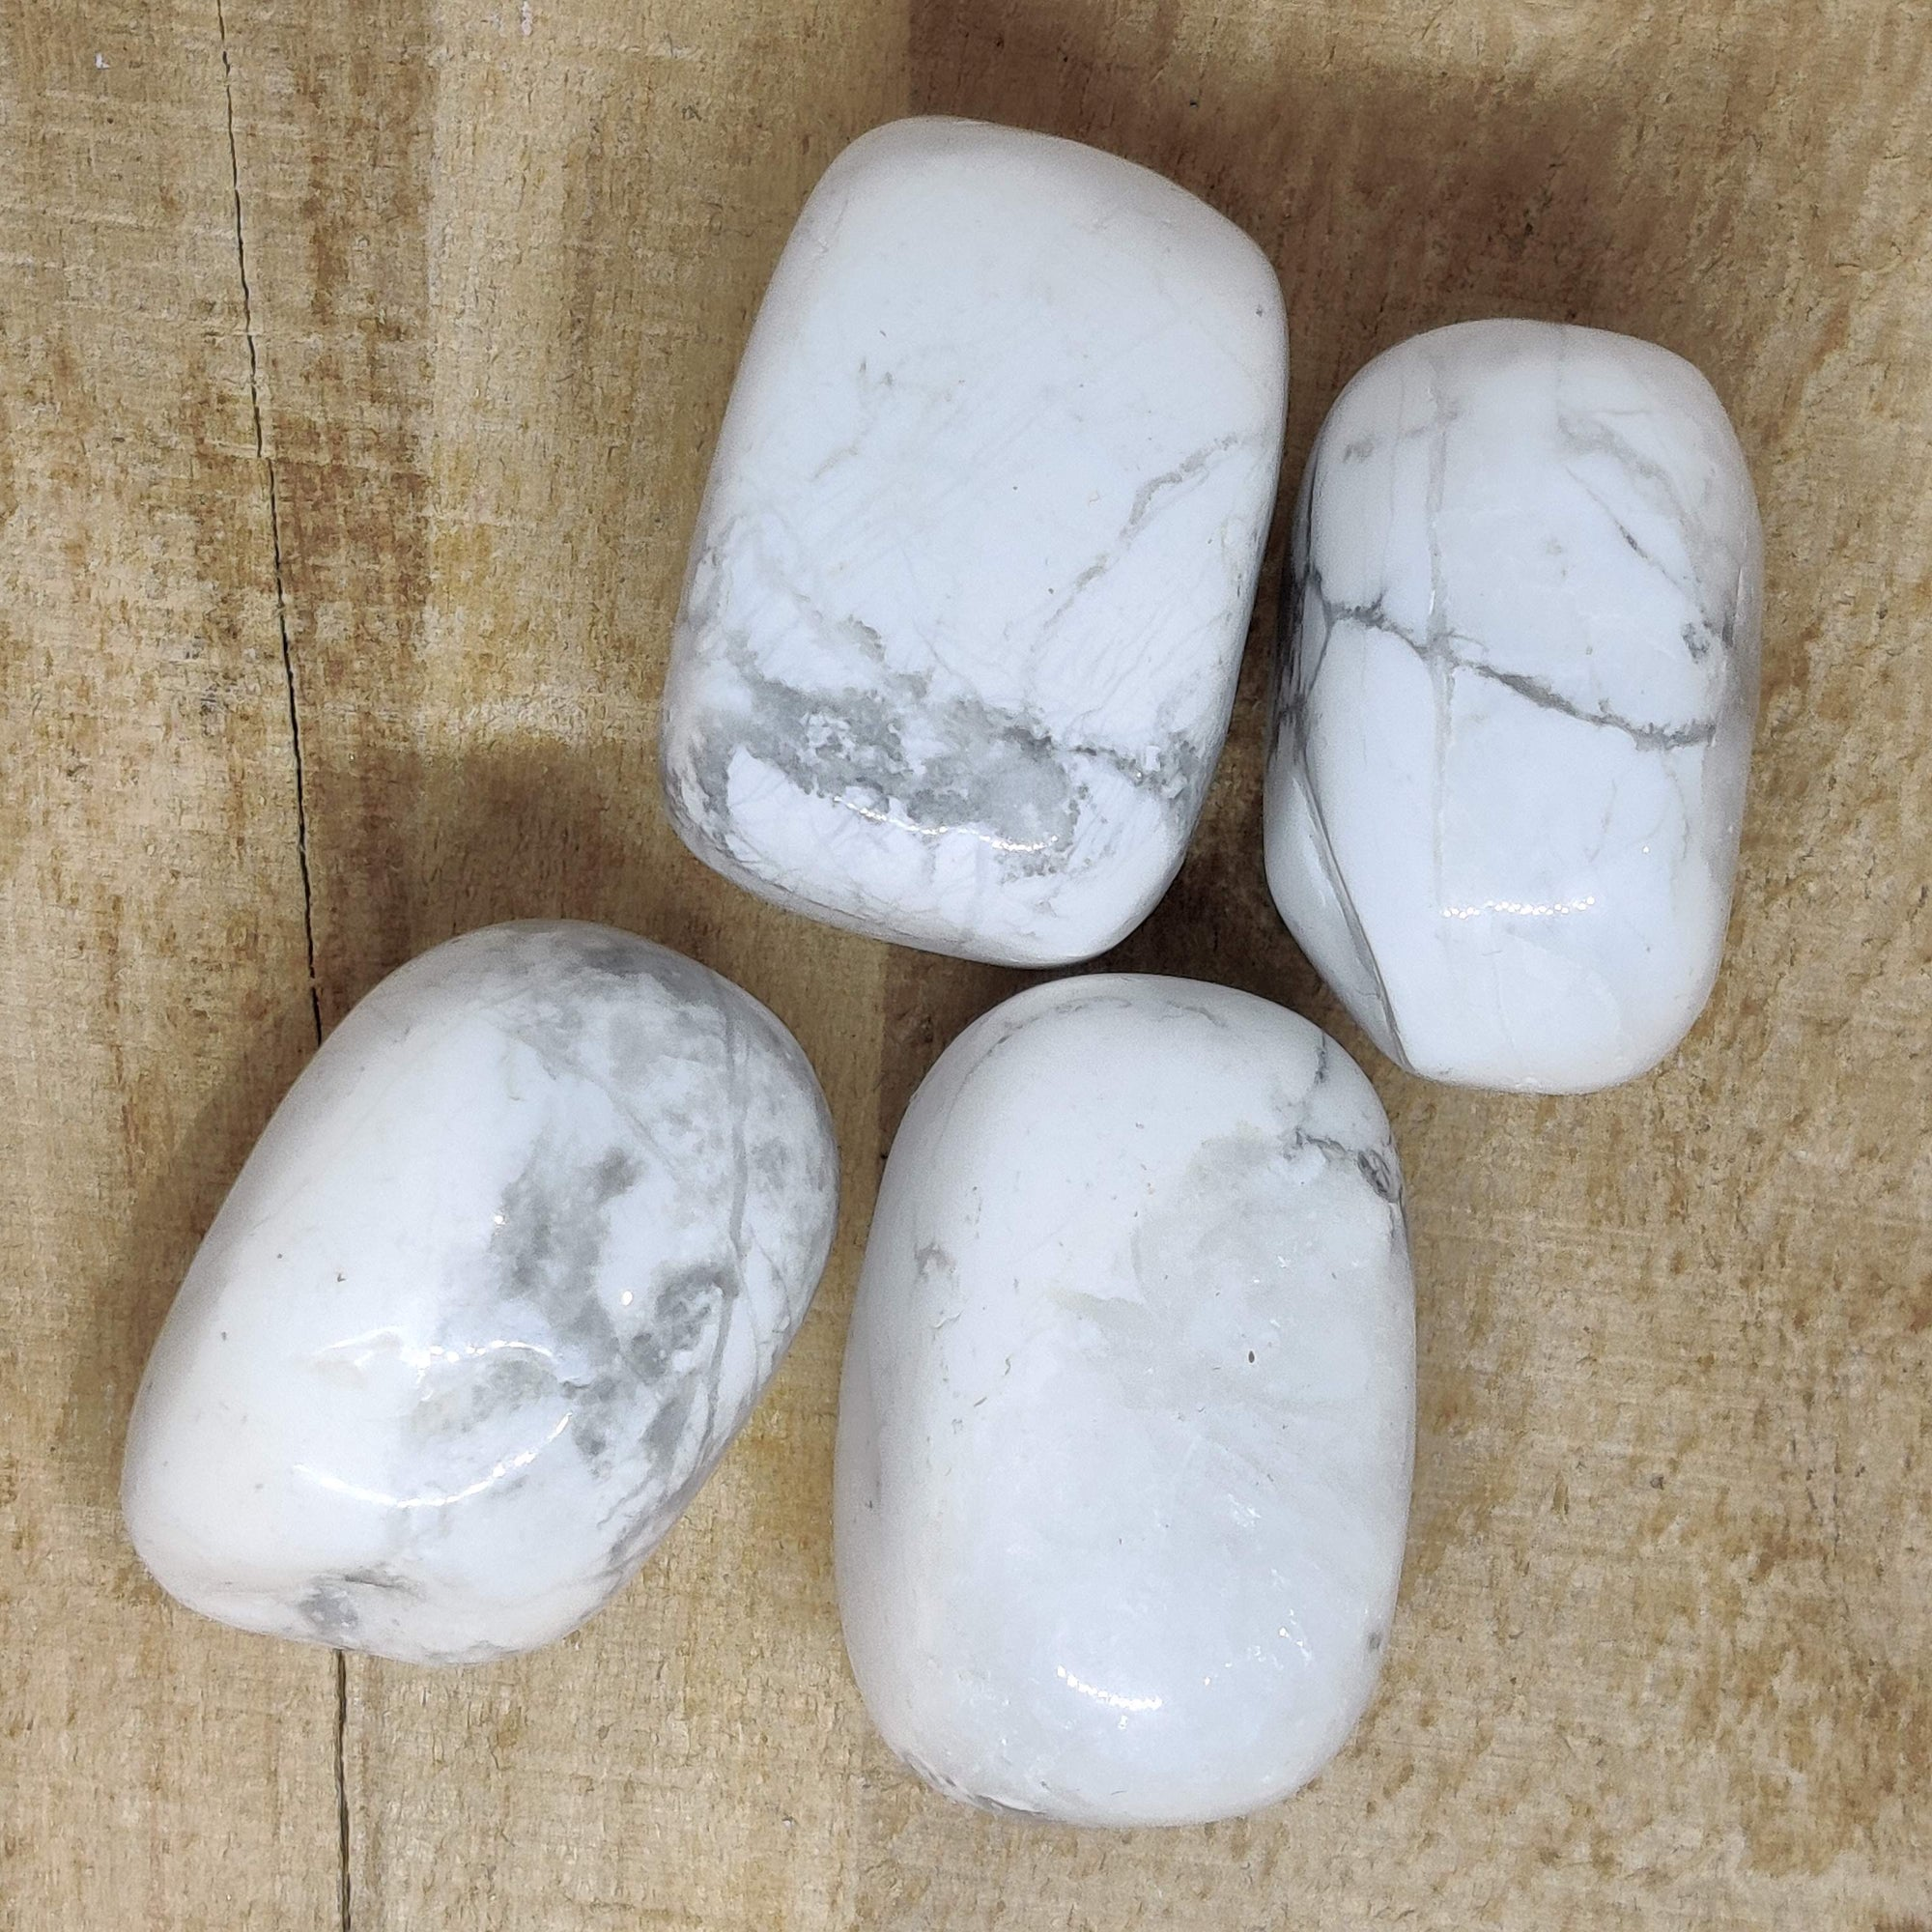 White Howlite Tumbled Crystal - Rivendell Shop NZ